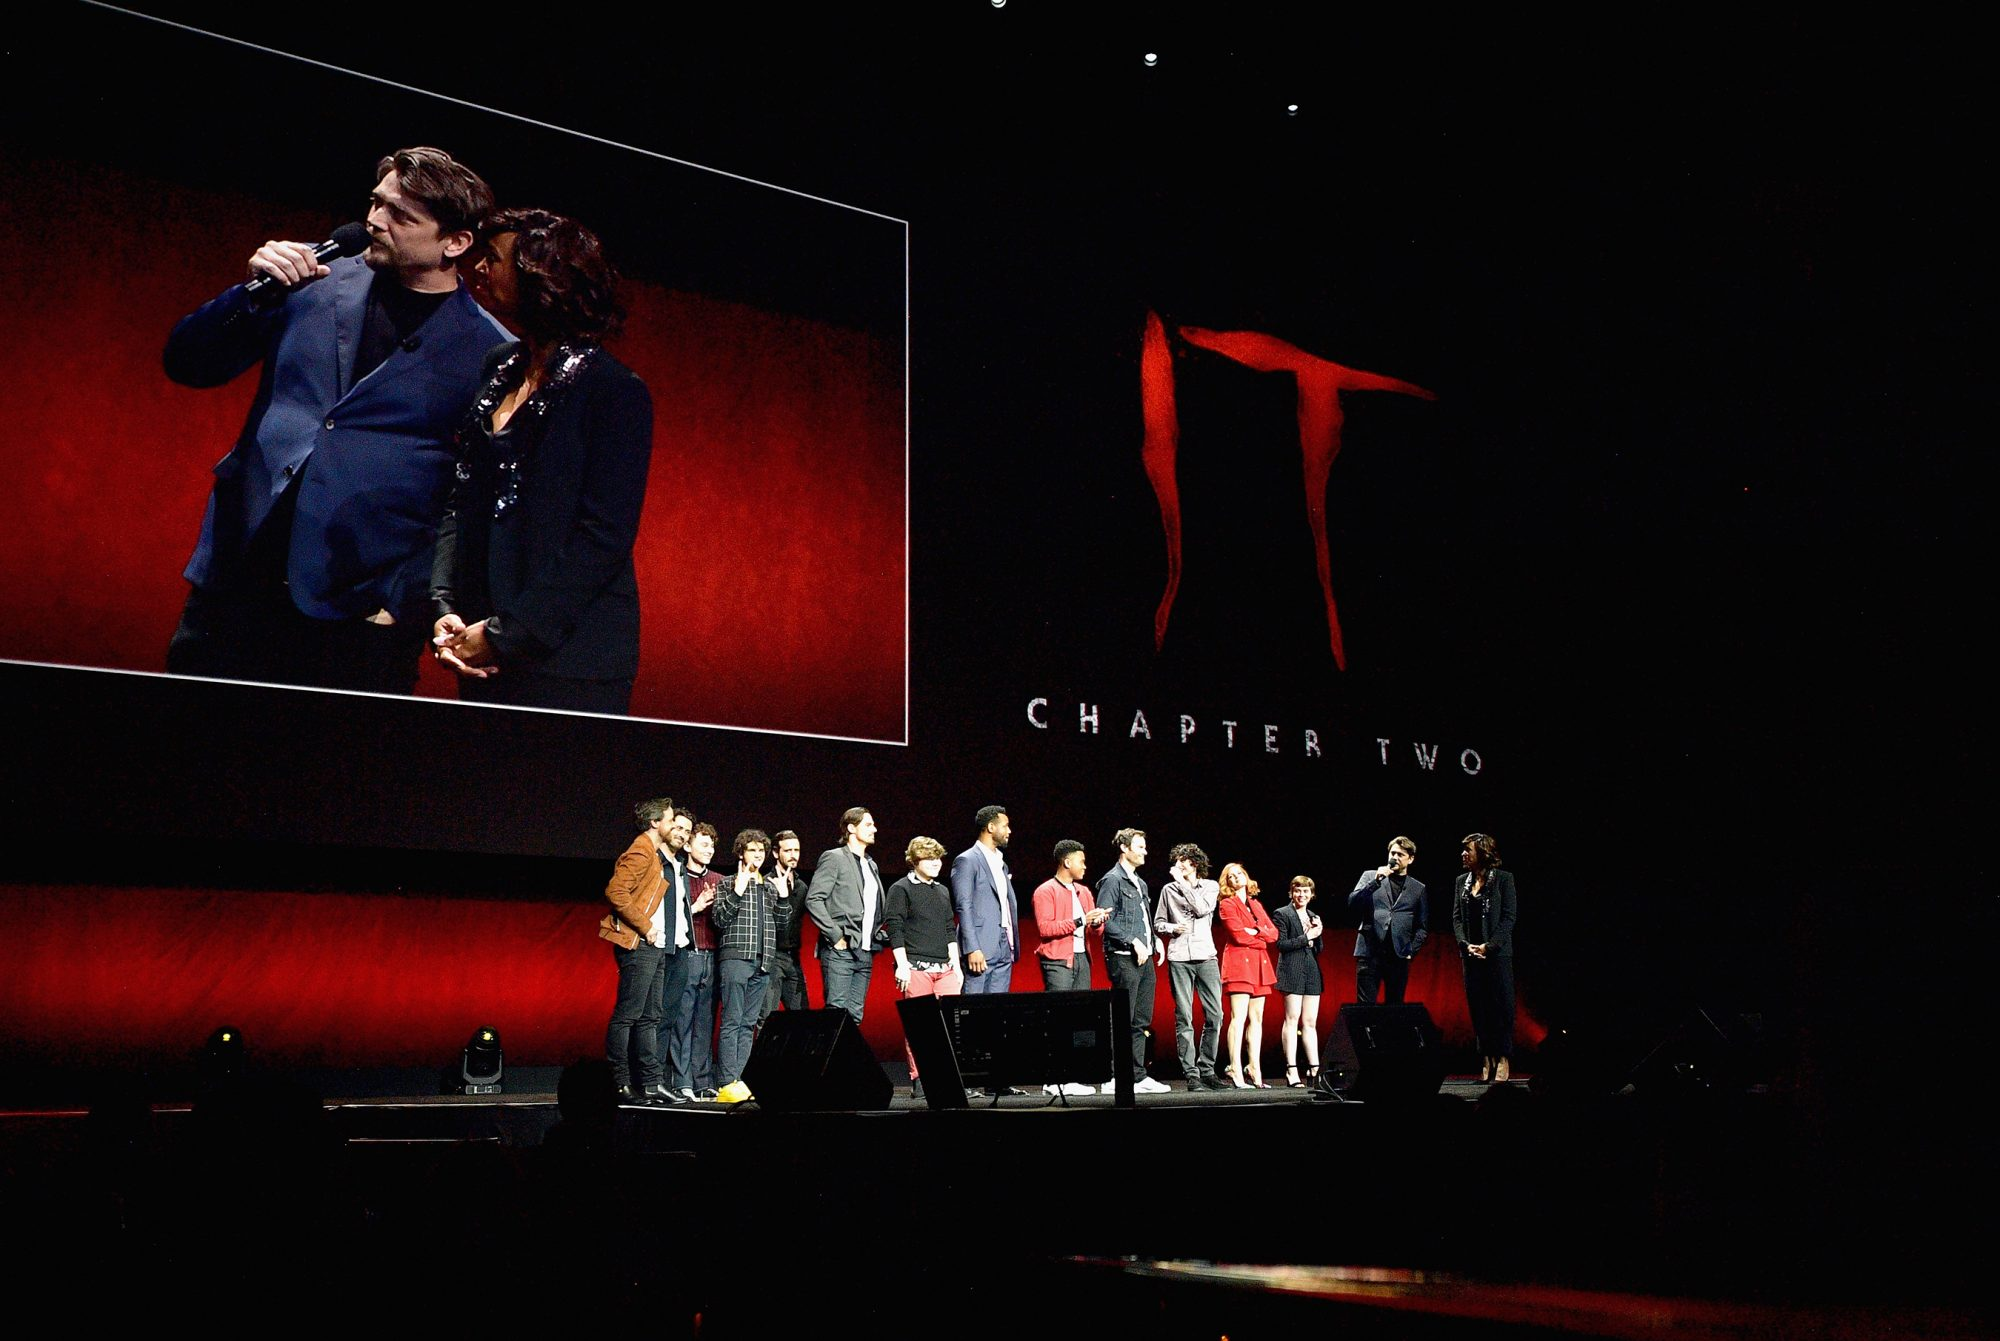 """CinemaCon 2019 - Warner Bros. Pictures Invites You to """"The Big Picture"""", an Exclusive Presentation Of Its Upcoming Slate"""